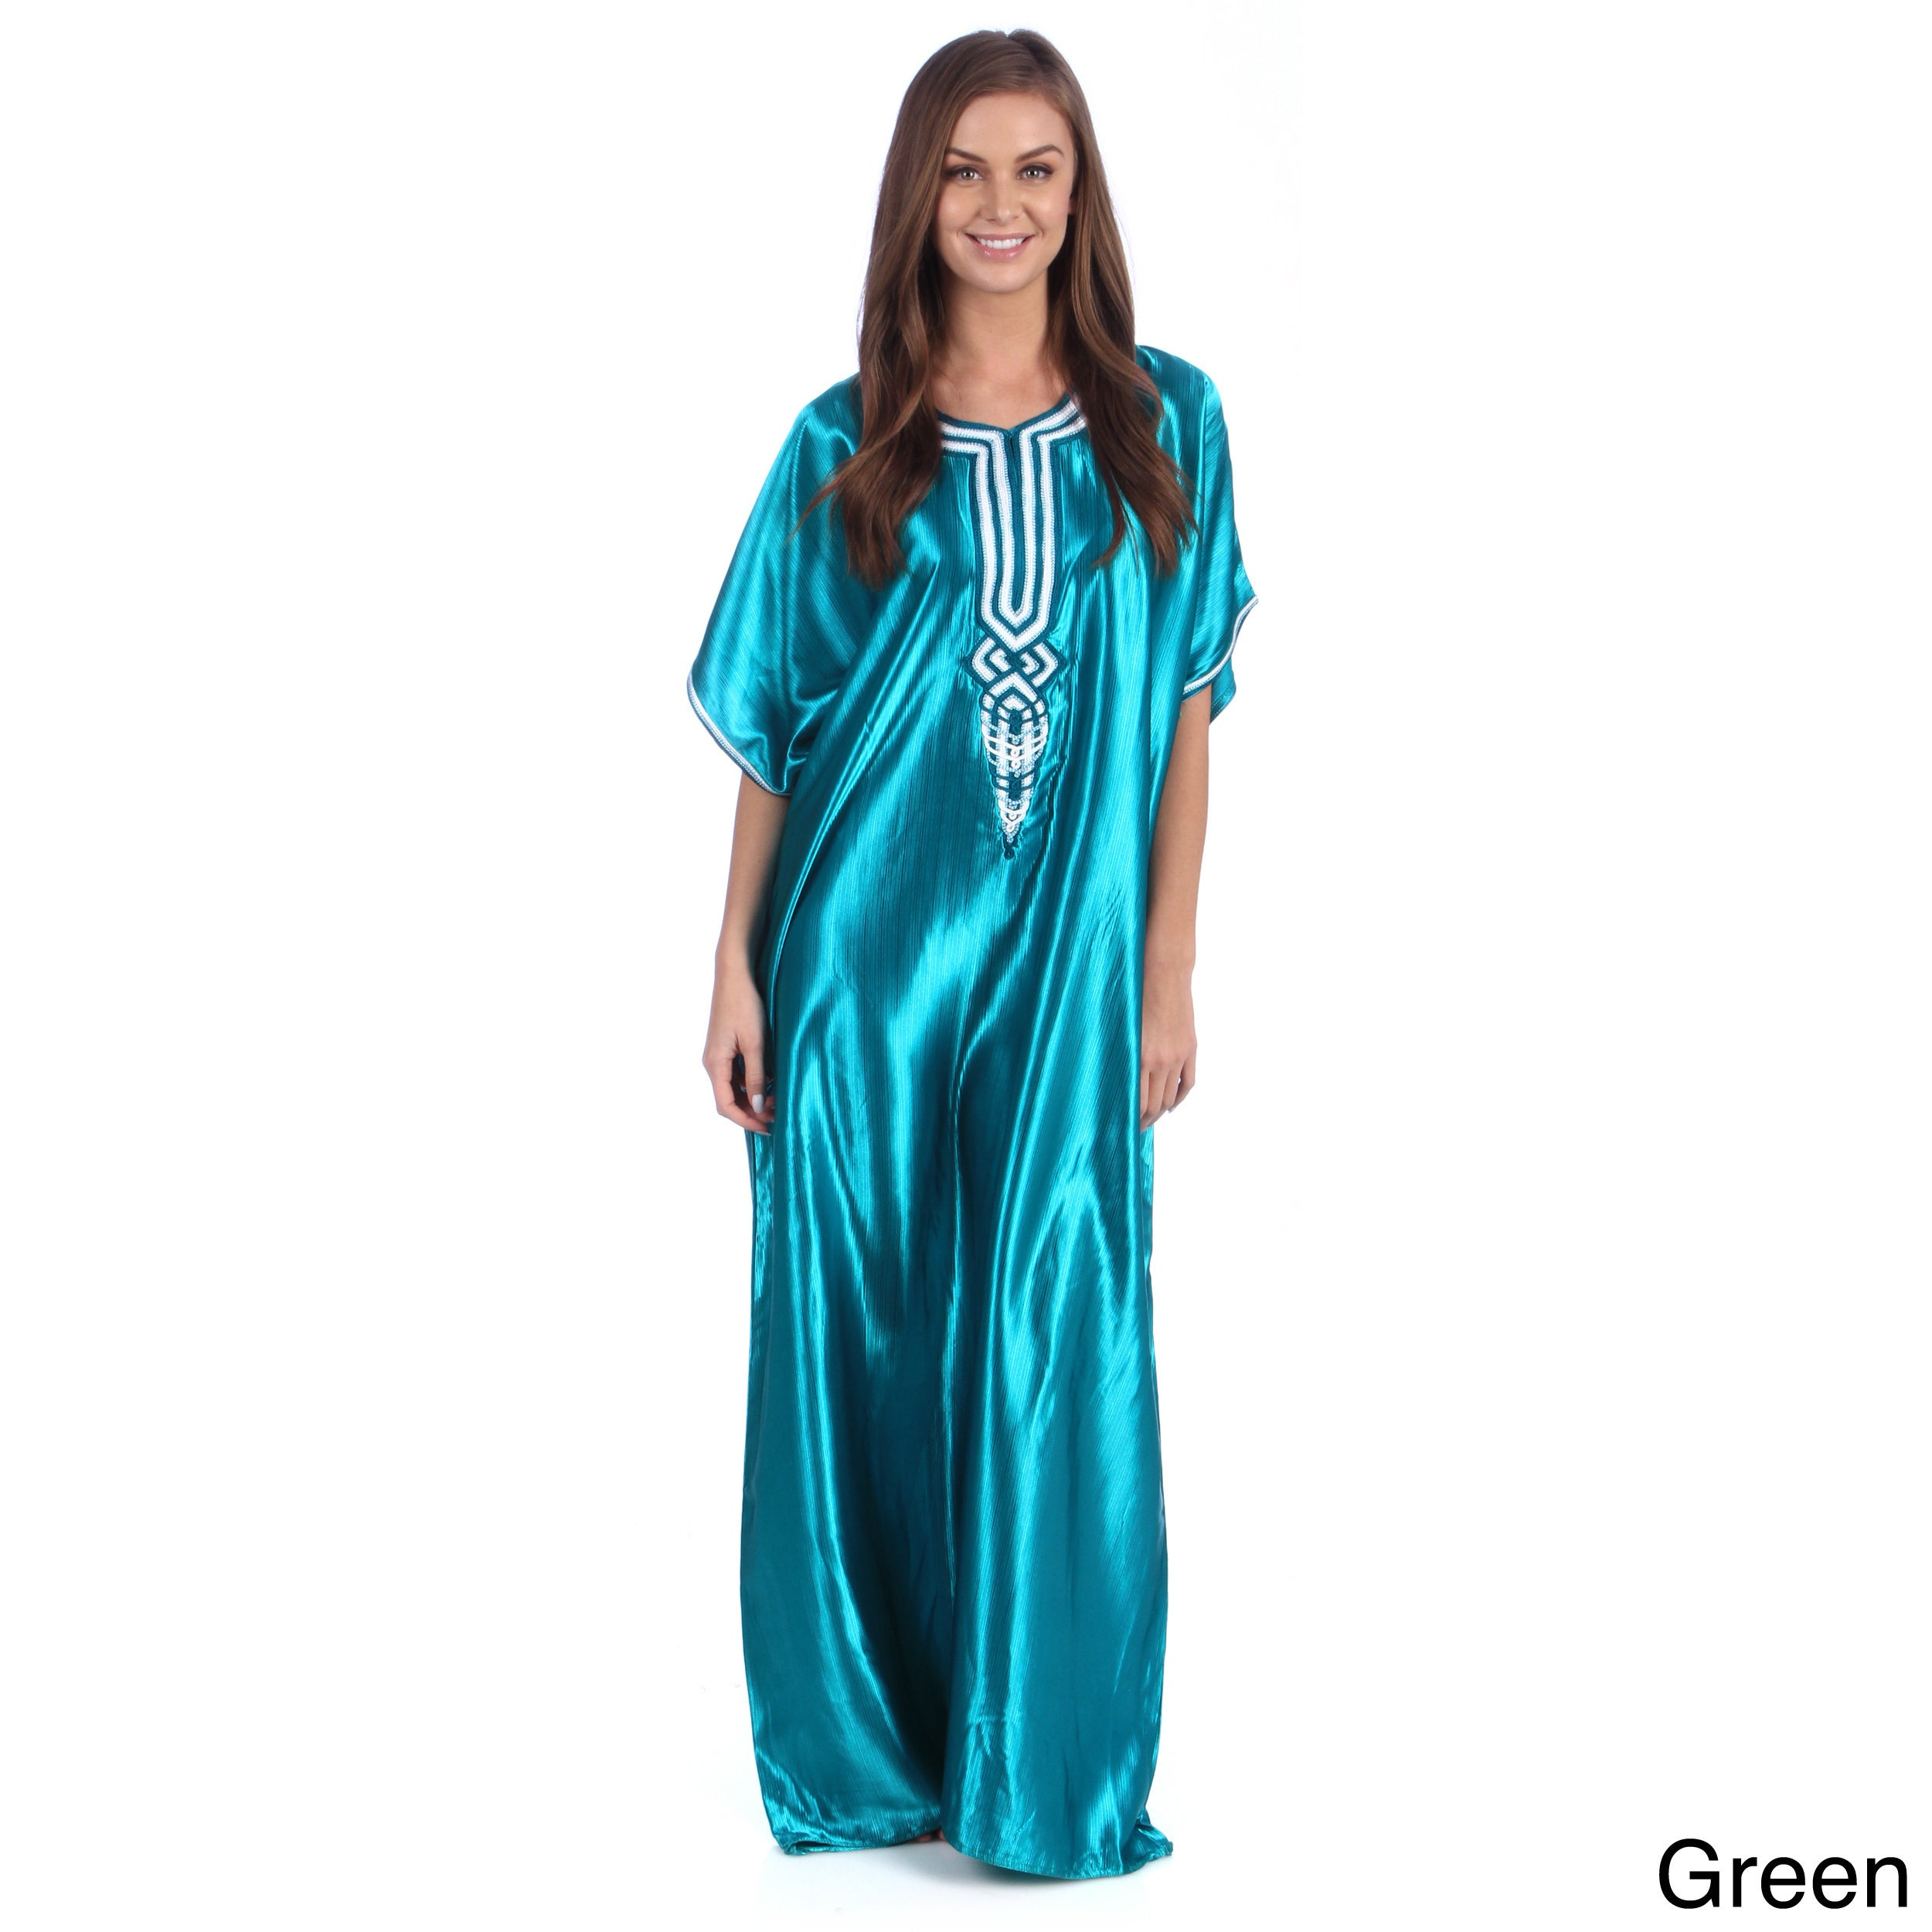 eb6da9d87f3 Shop Handmade Moroccan Women s Sunny Blue Satin Fabric Long Mediterranean  Caftan with Tread Embroidered Fiber (Morocco) - Free Shipping On Orders  Over  45 ...